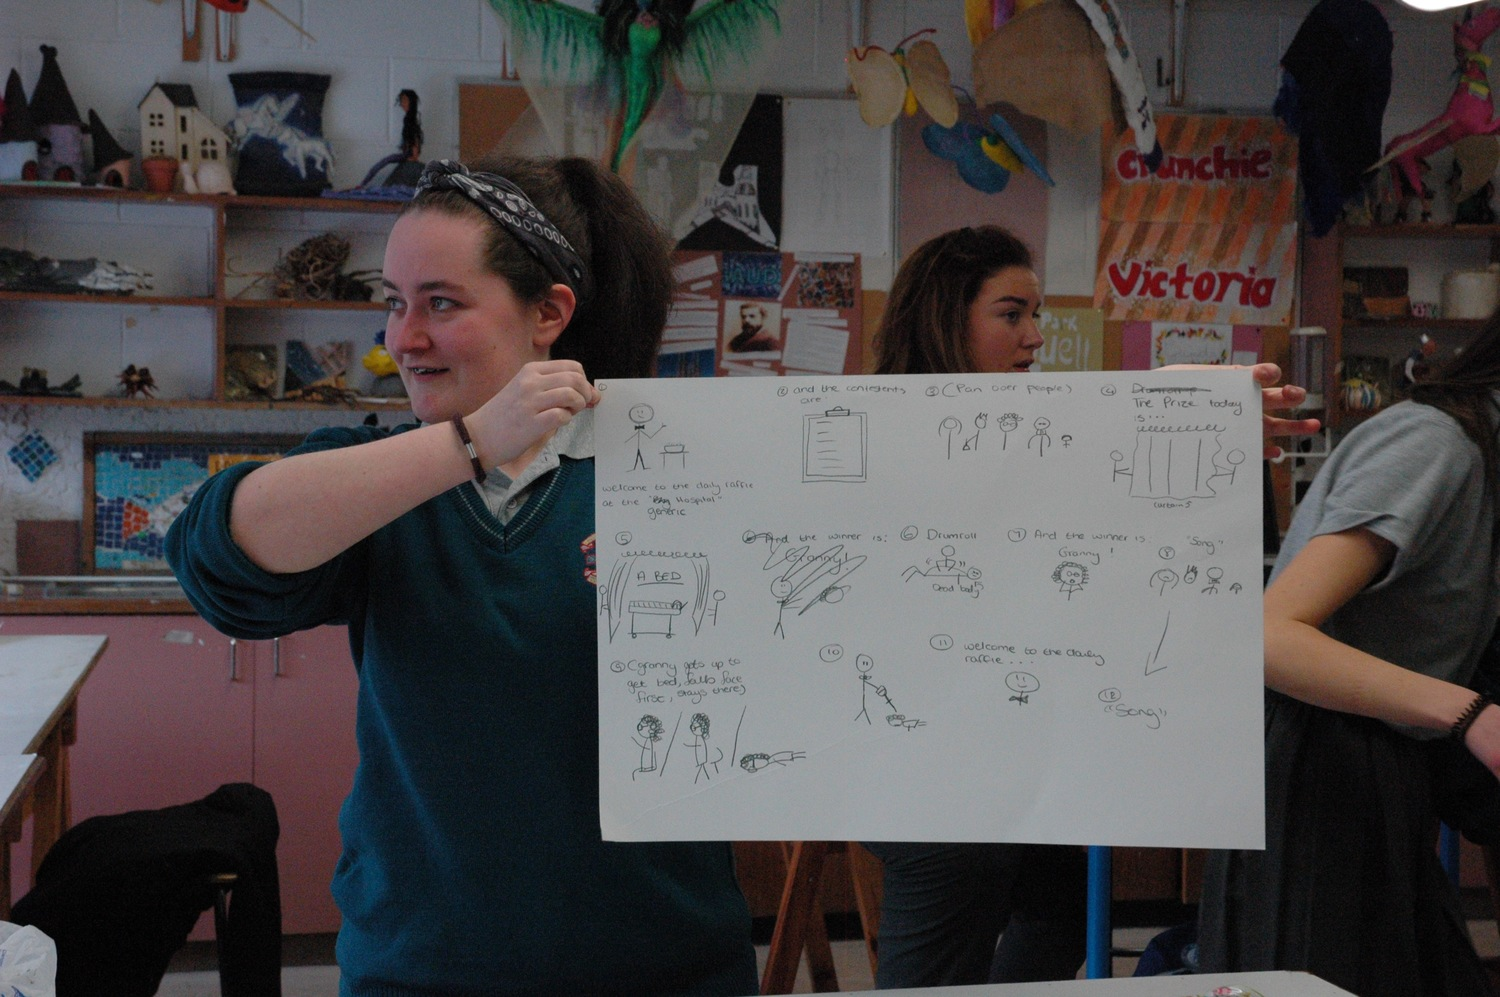 Students and Clodagh used story-boarding, musical composition, choreography, special effects, prop-building and performance to create an impressive drama